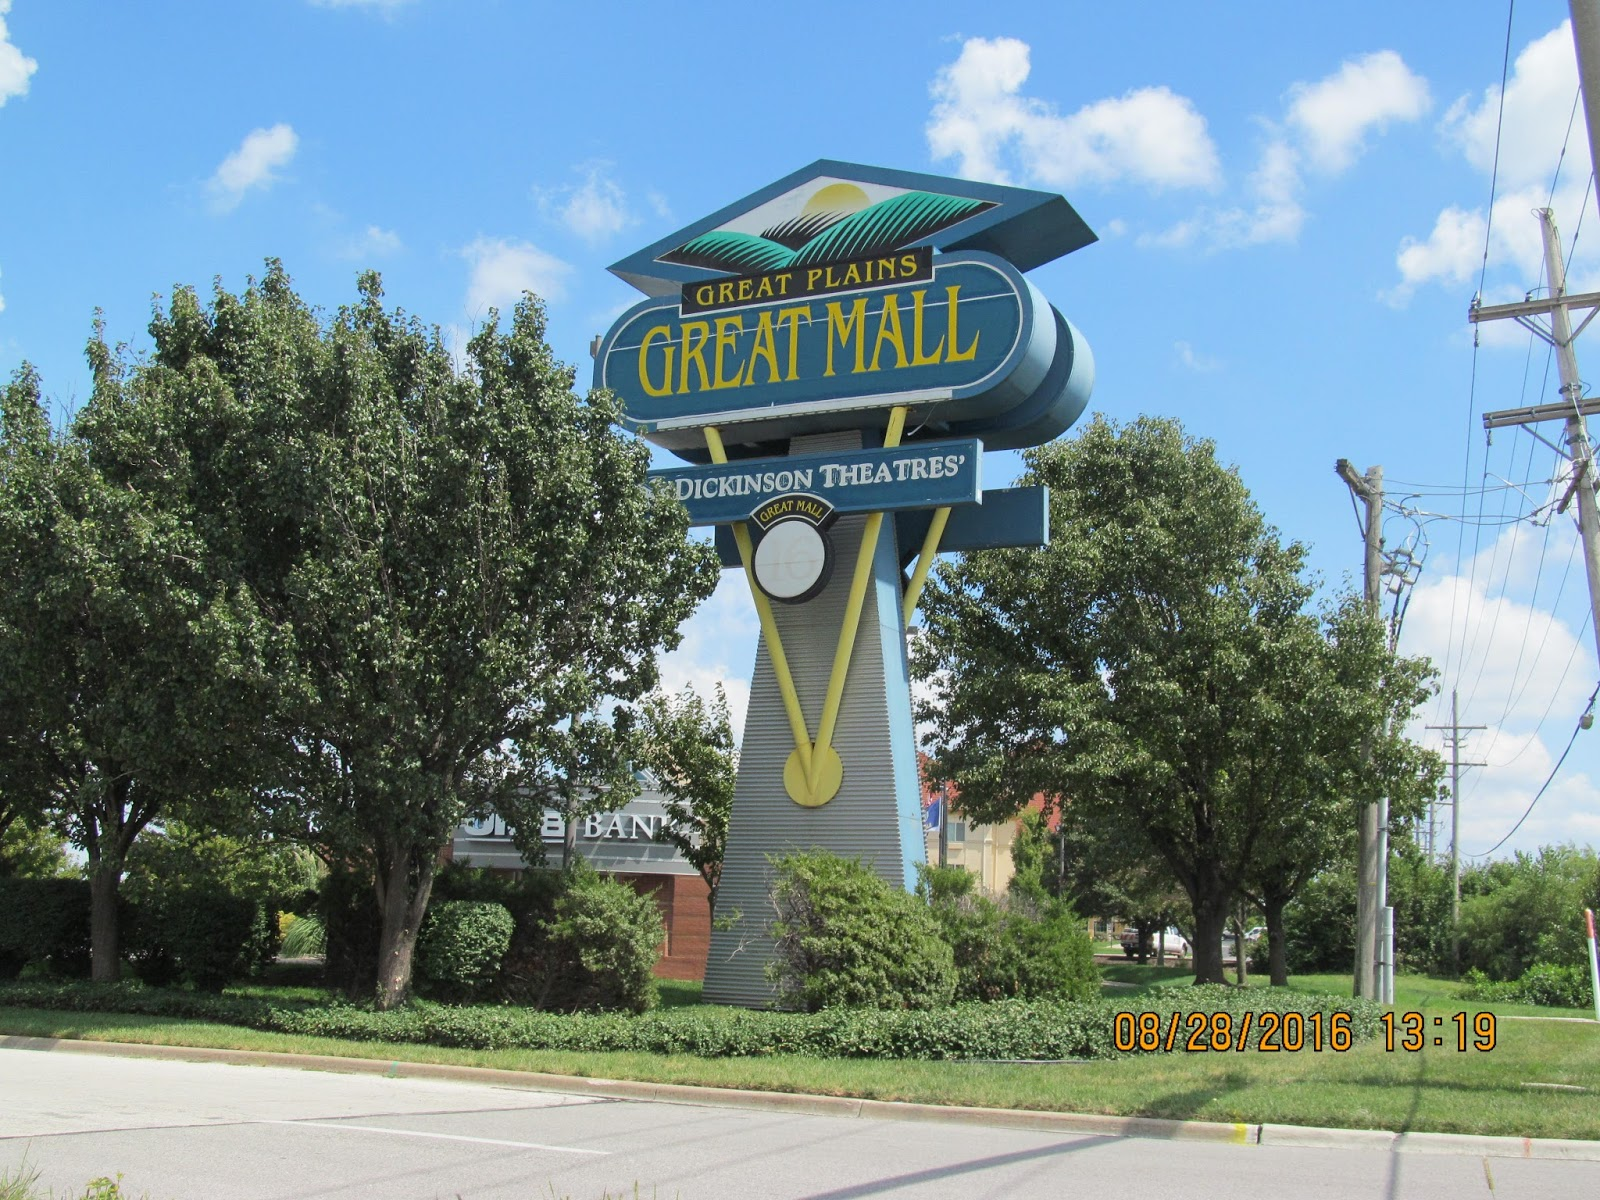 Trip To The Mall Dead The Great Mall Of The Great Plains Olathe Kansas